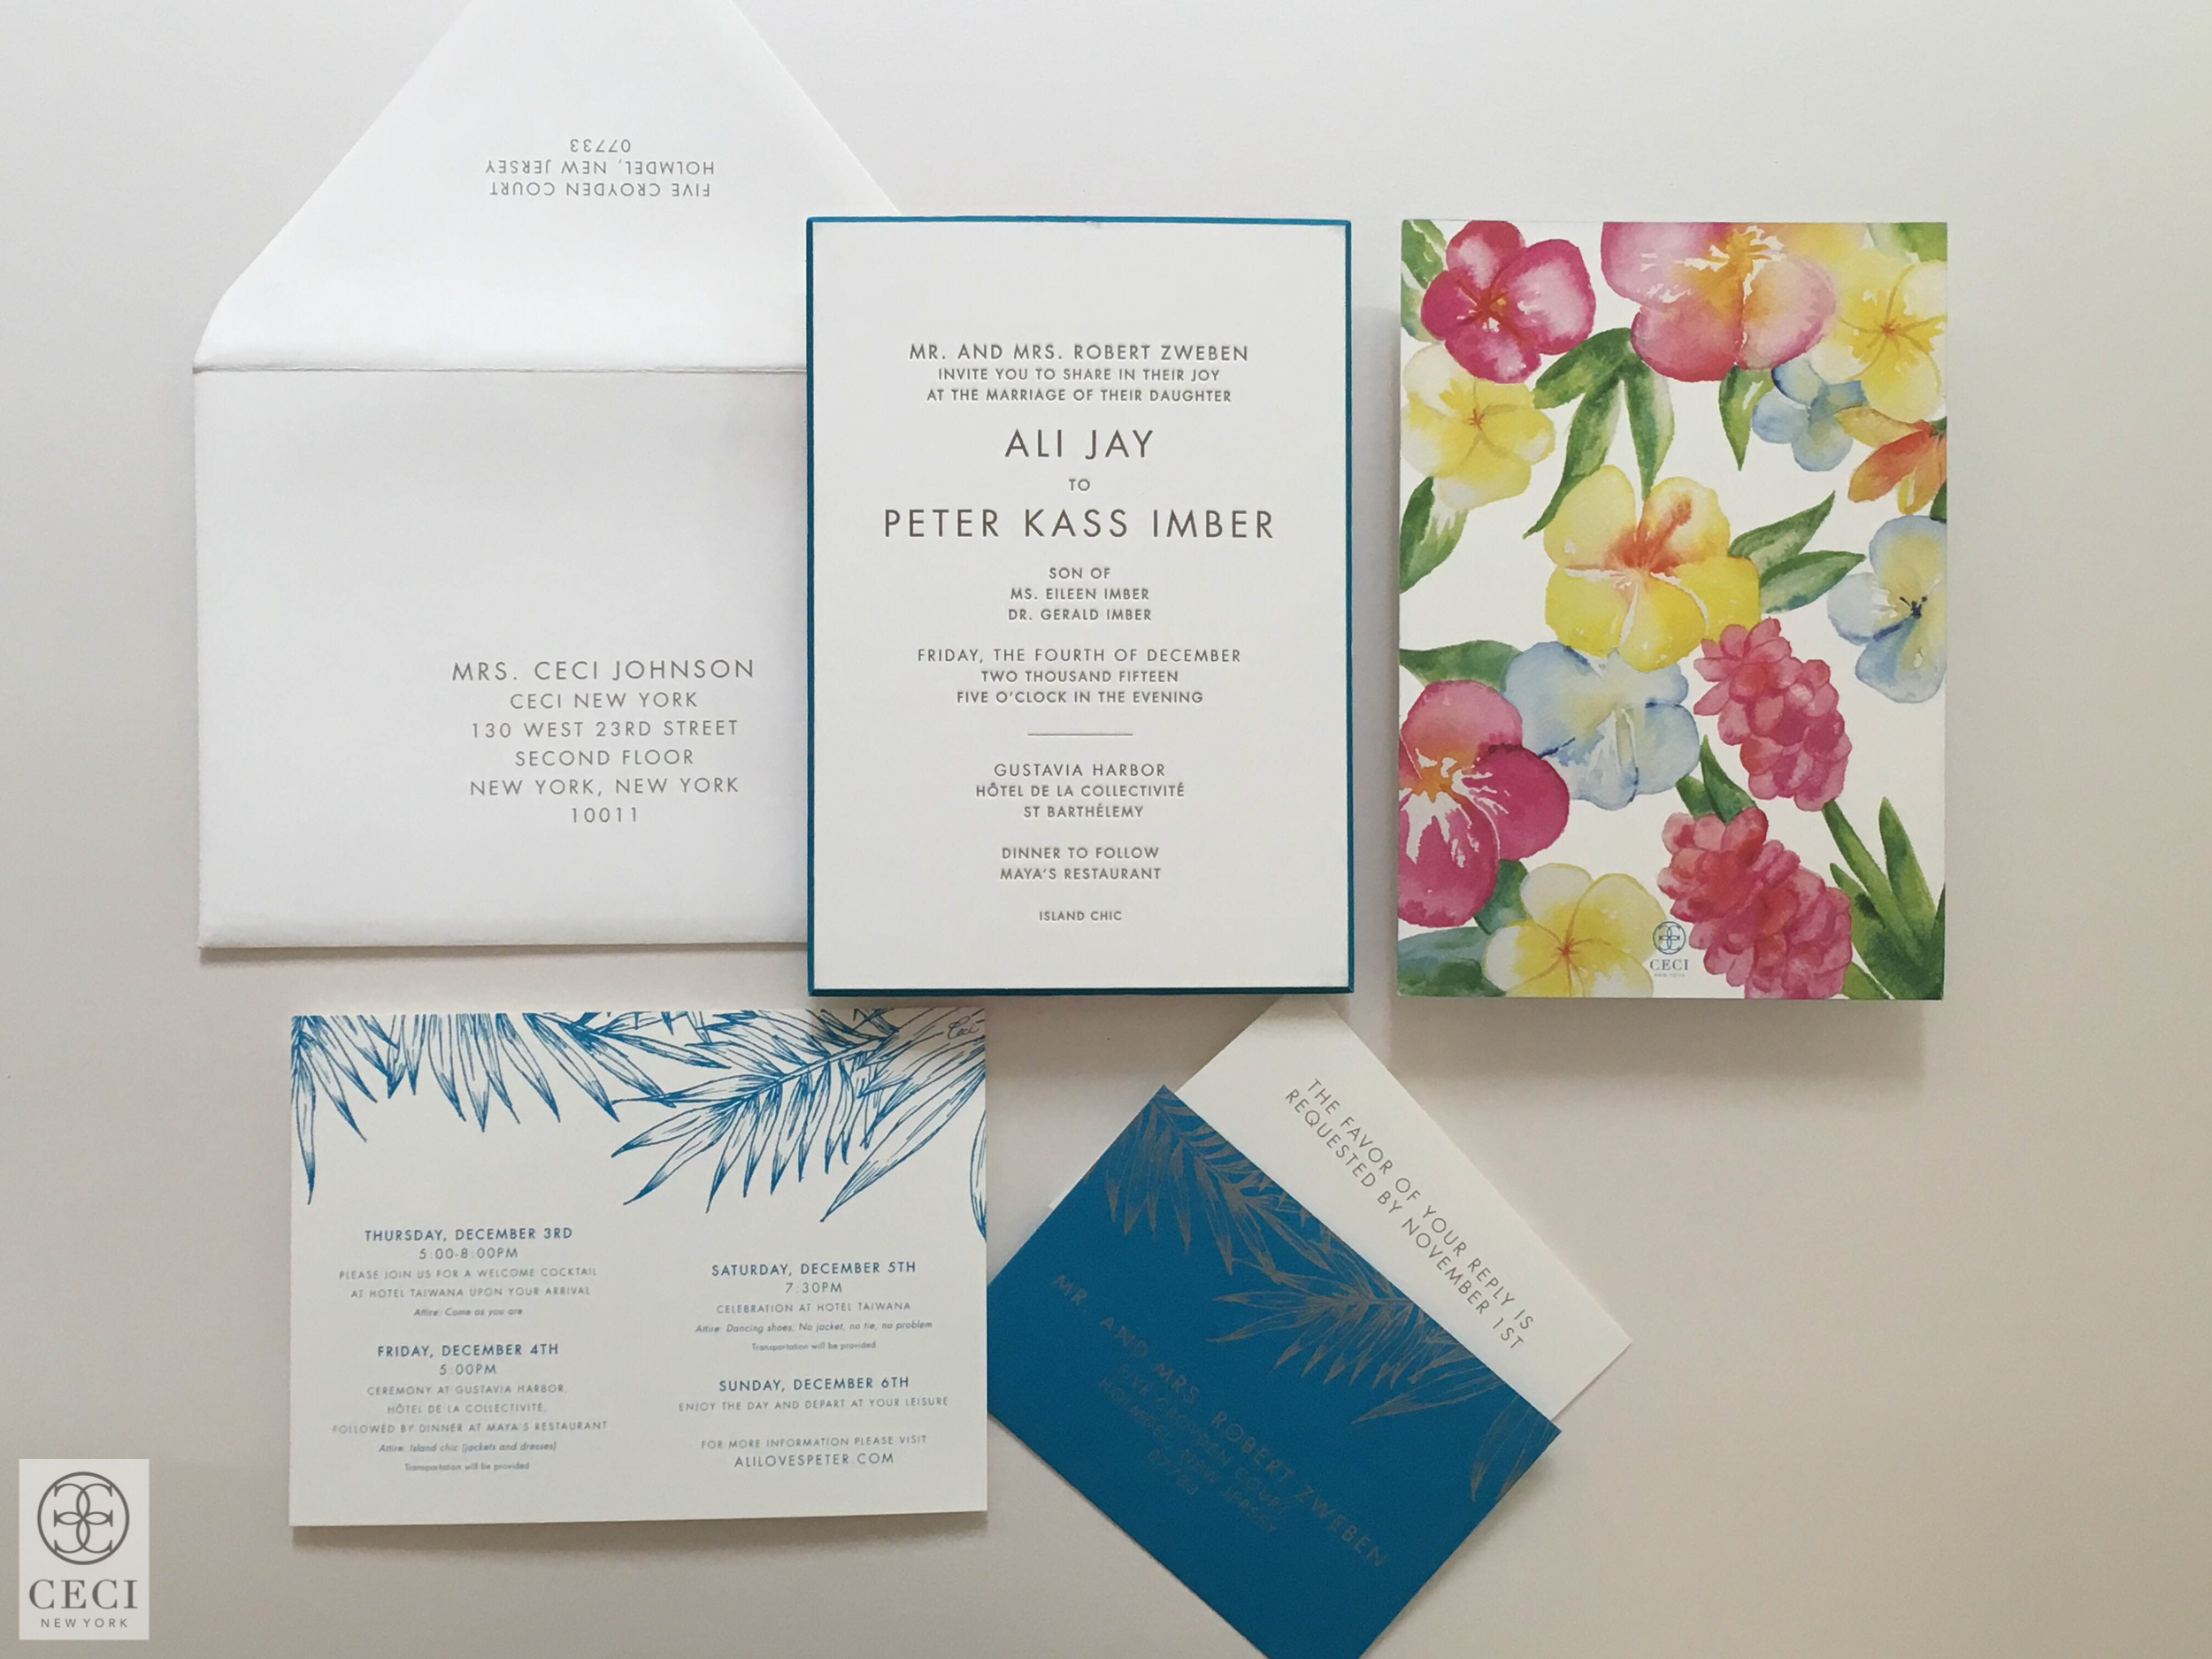 Ceci_New_York_Ceci_Style_Ceci_Johnson_Luxury_Lifestyle_Destination_St._Barts_Wedding_Letterpress_Watercolor_Floral_Hand_Painted_Inspiration_Design_Custom_Couture_Personalized_Invitations_-6.jpg